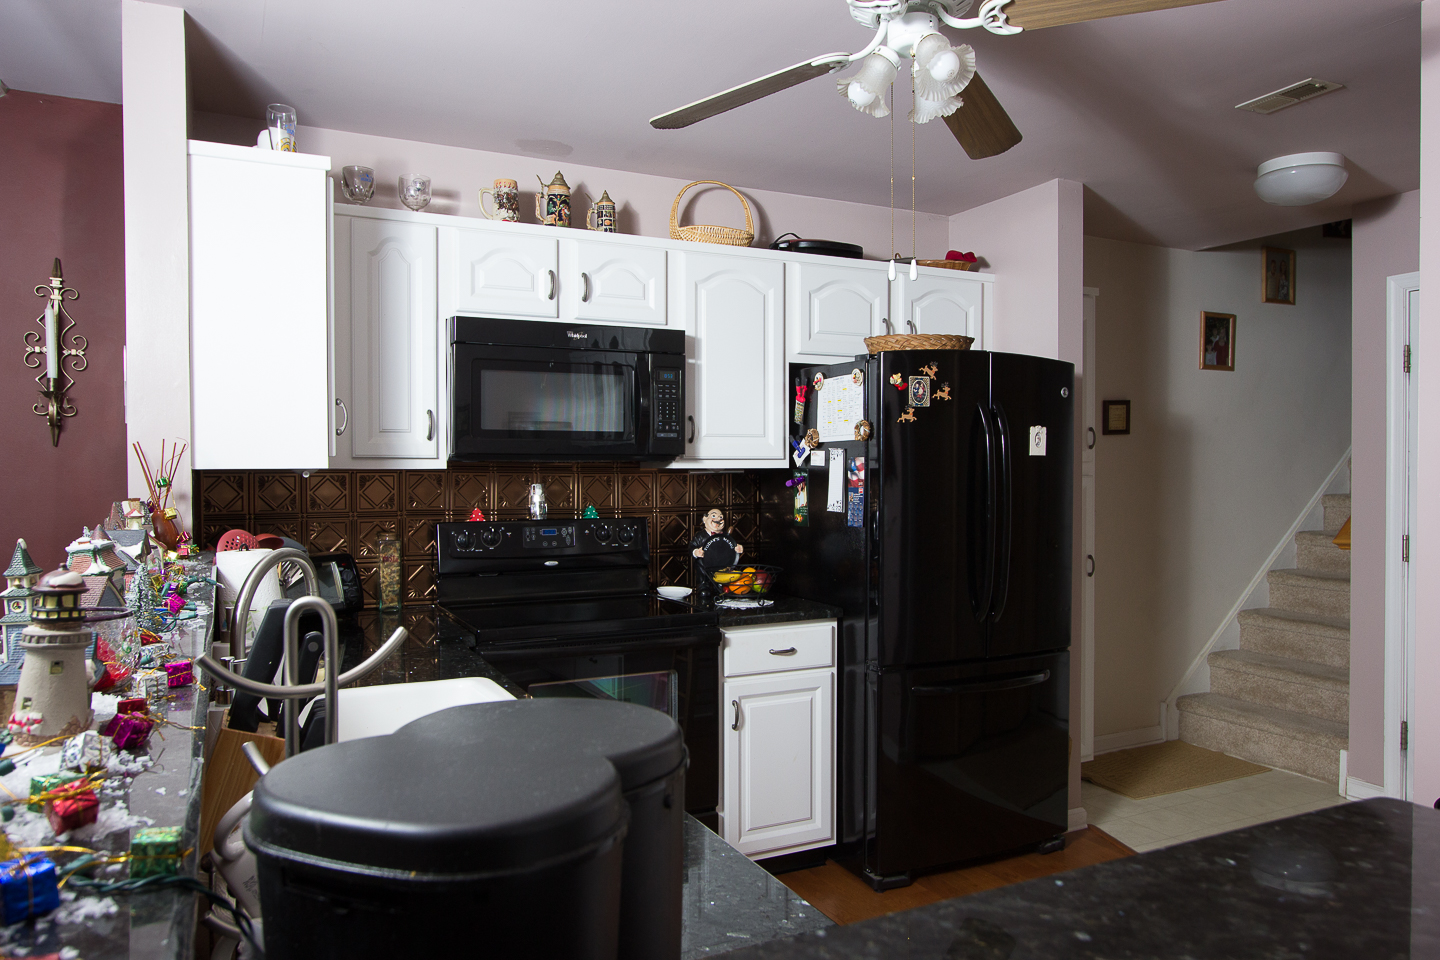 Kitchen Photos-131